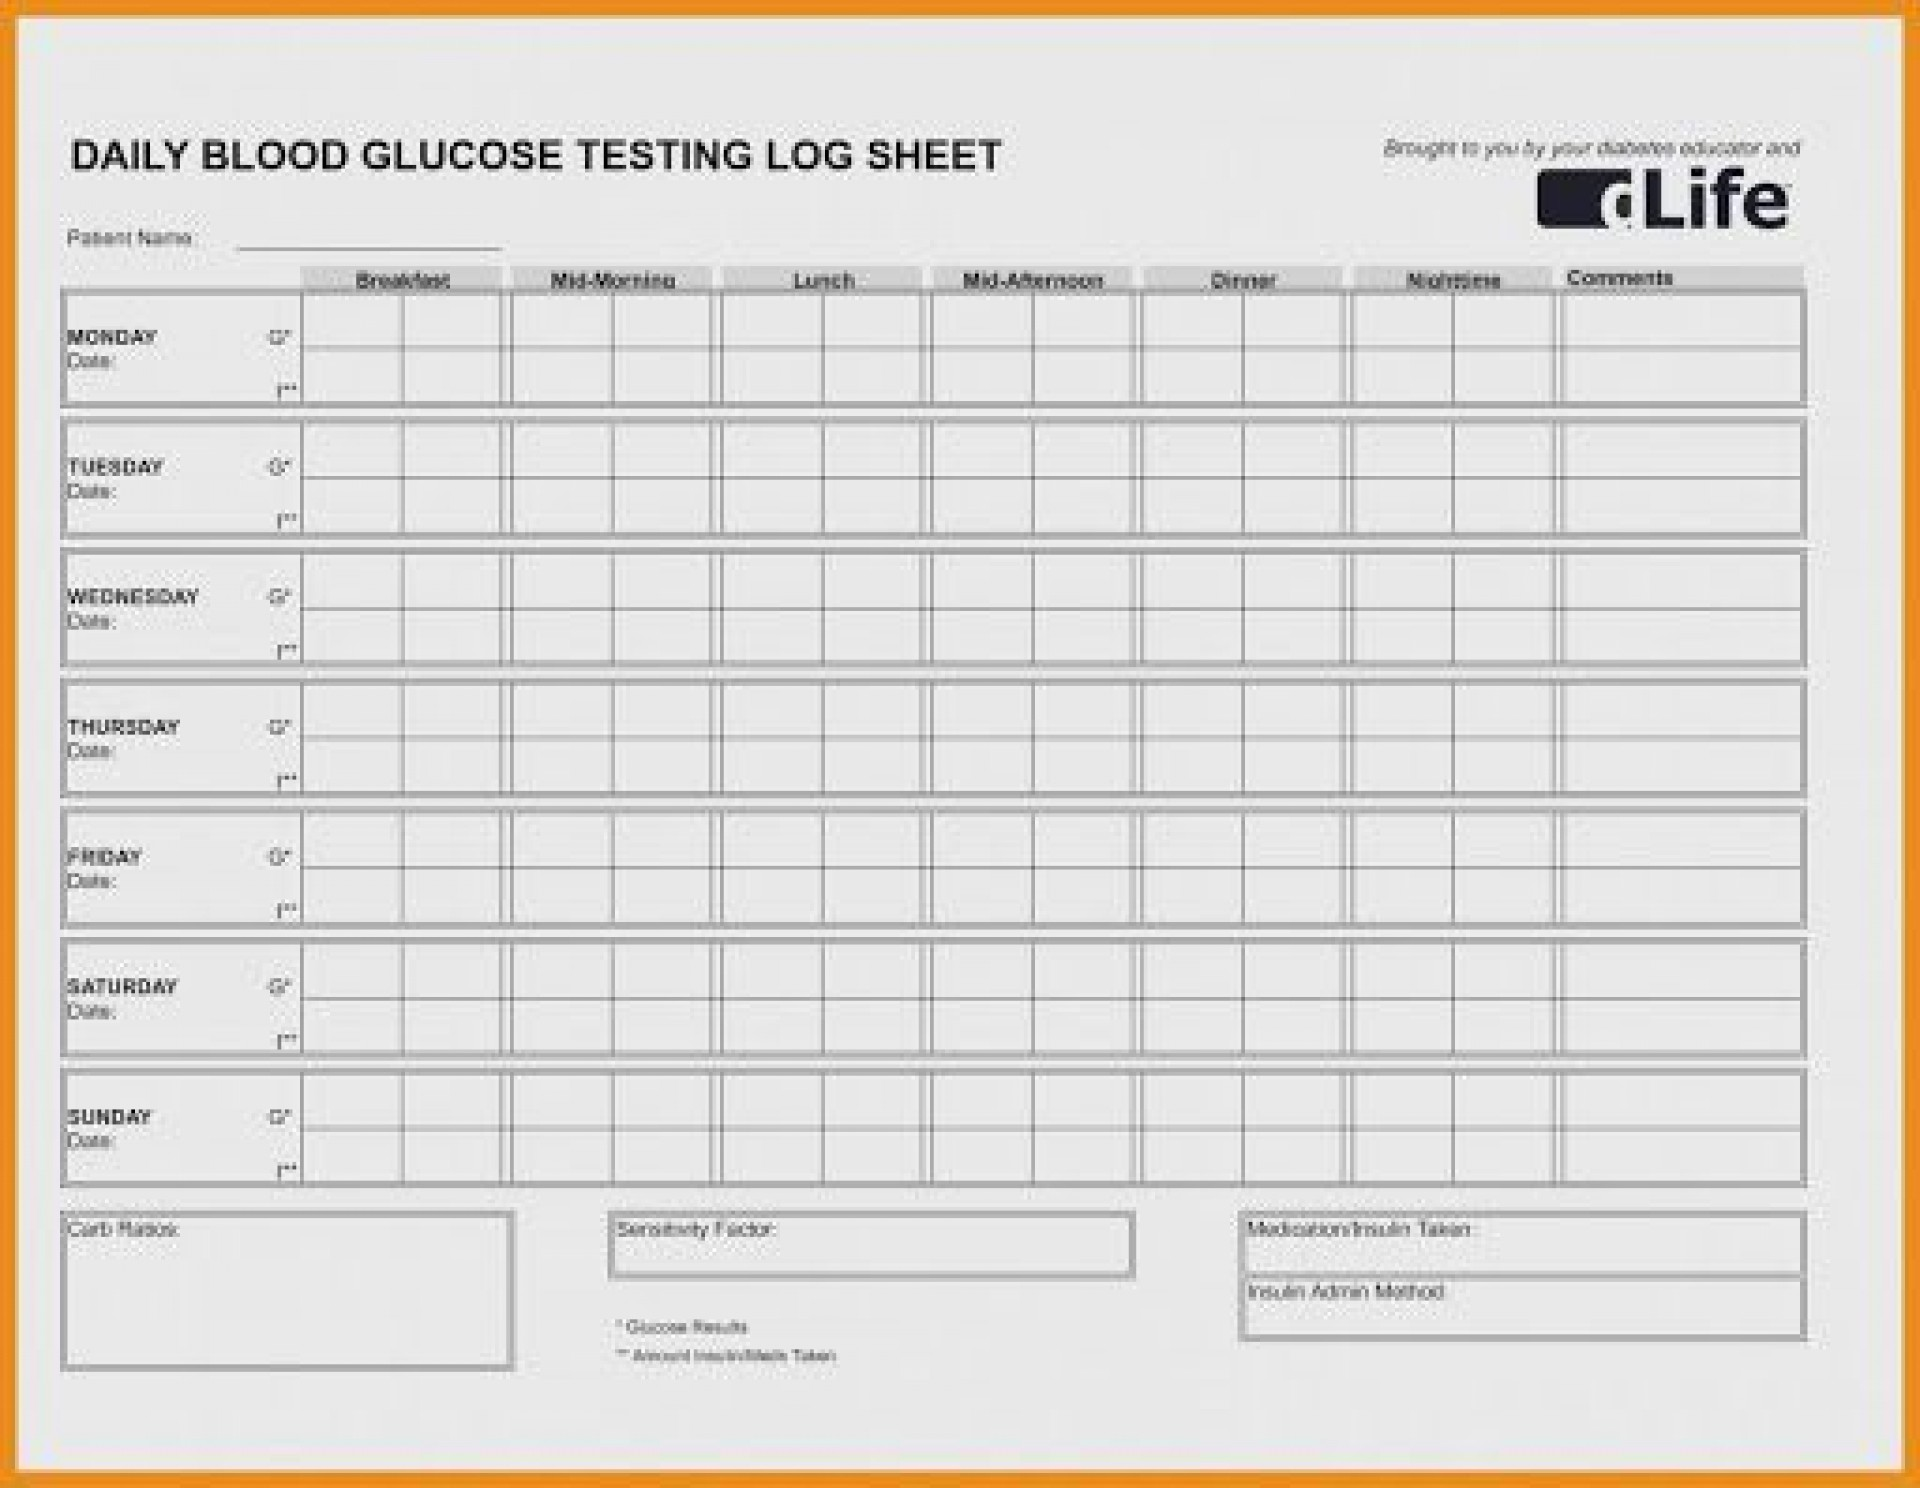 009 Stunning Blood Glucose Tracker Template High Resolution  Spreadsheet Tracking1920